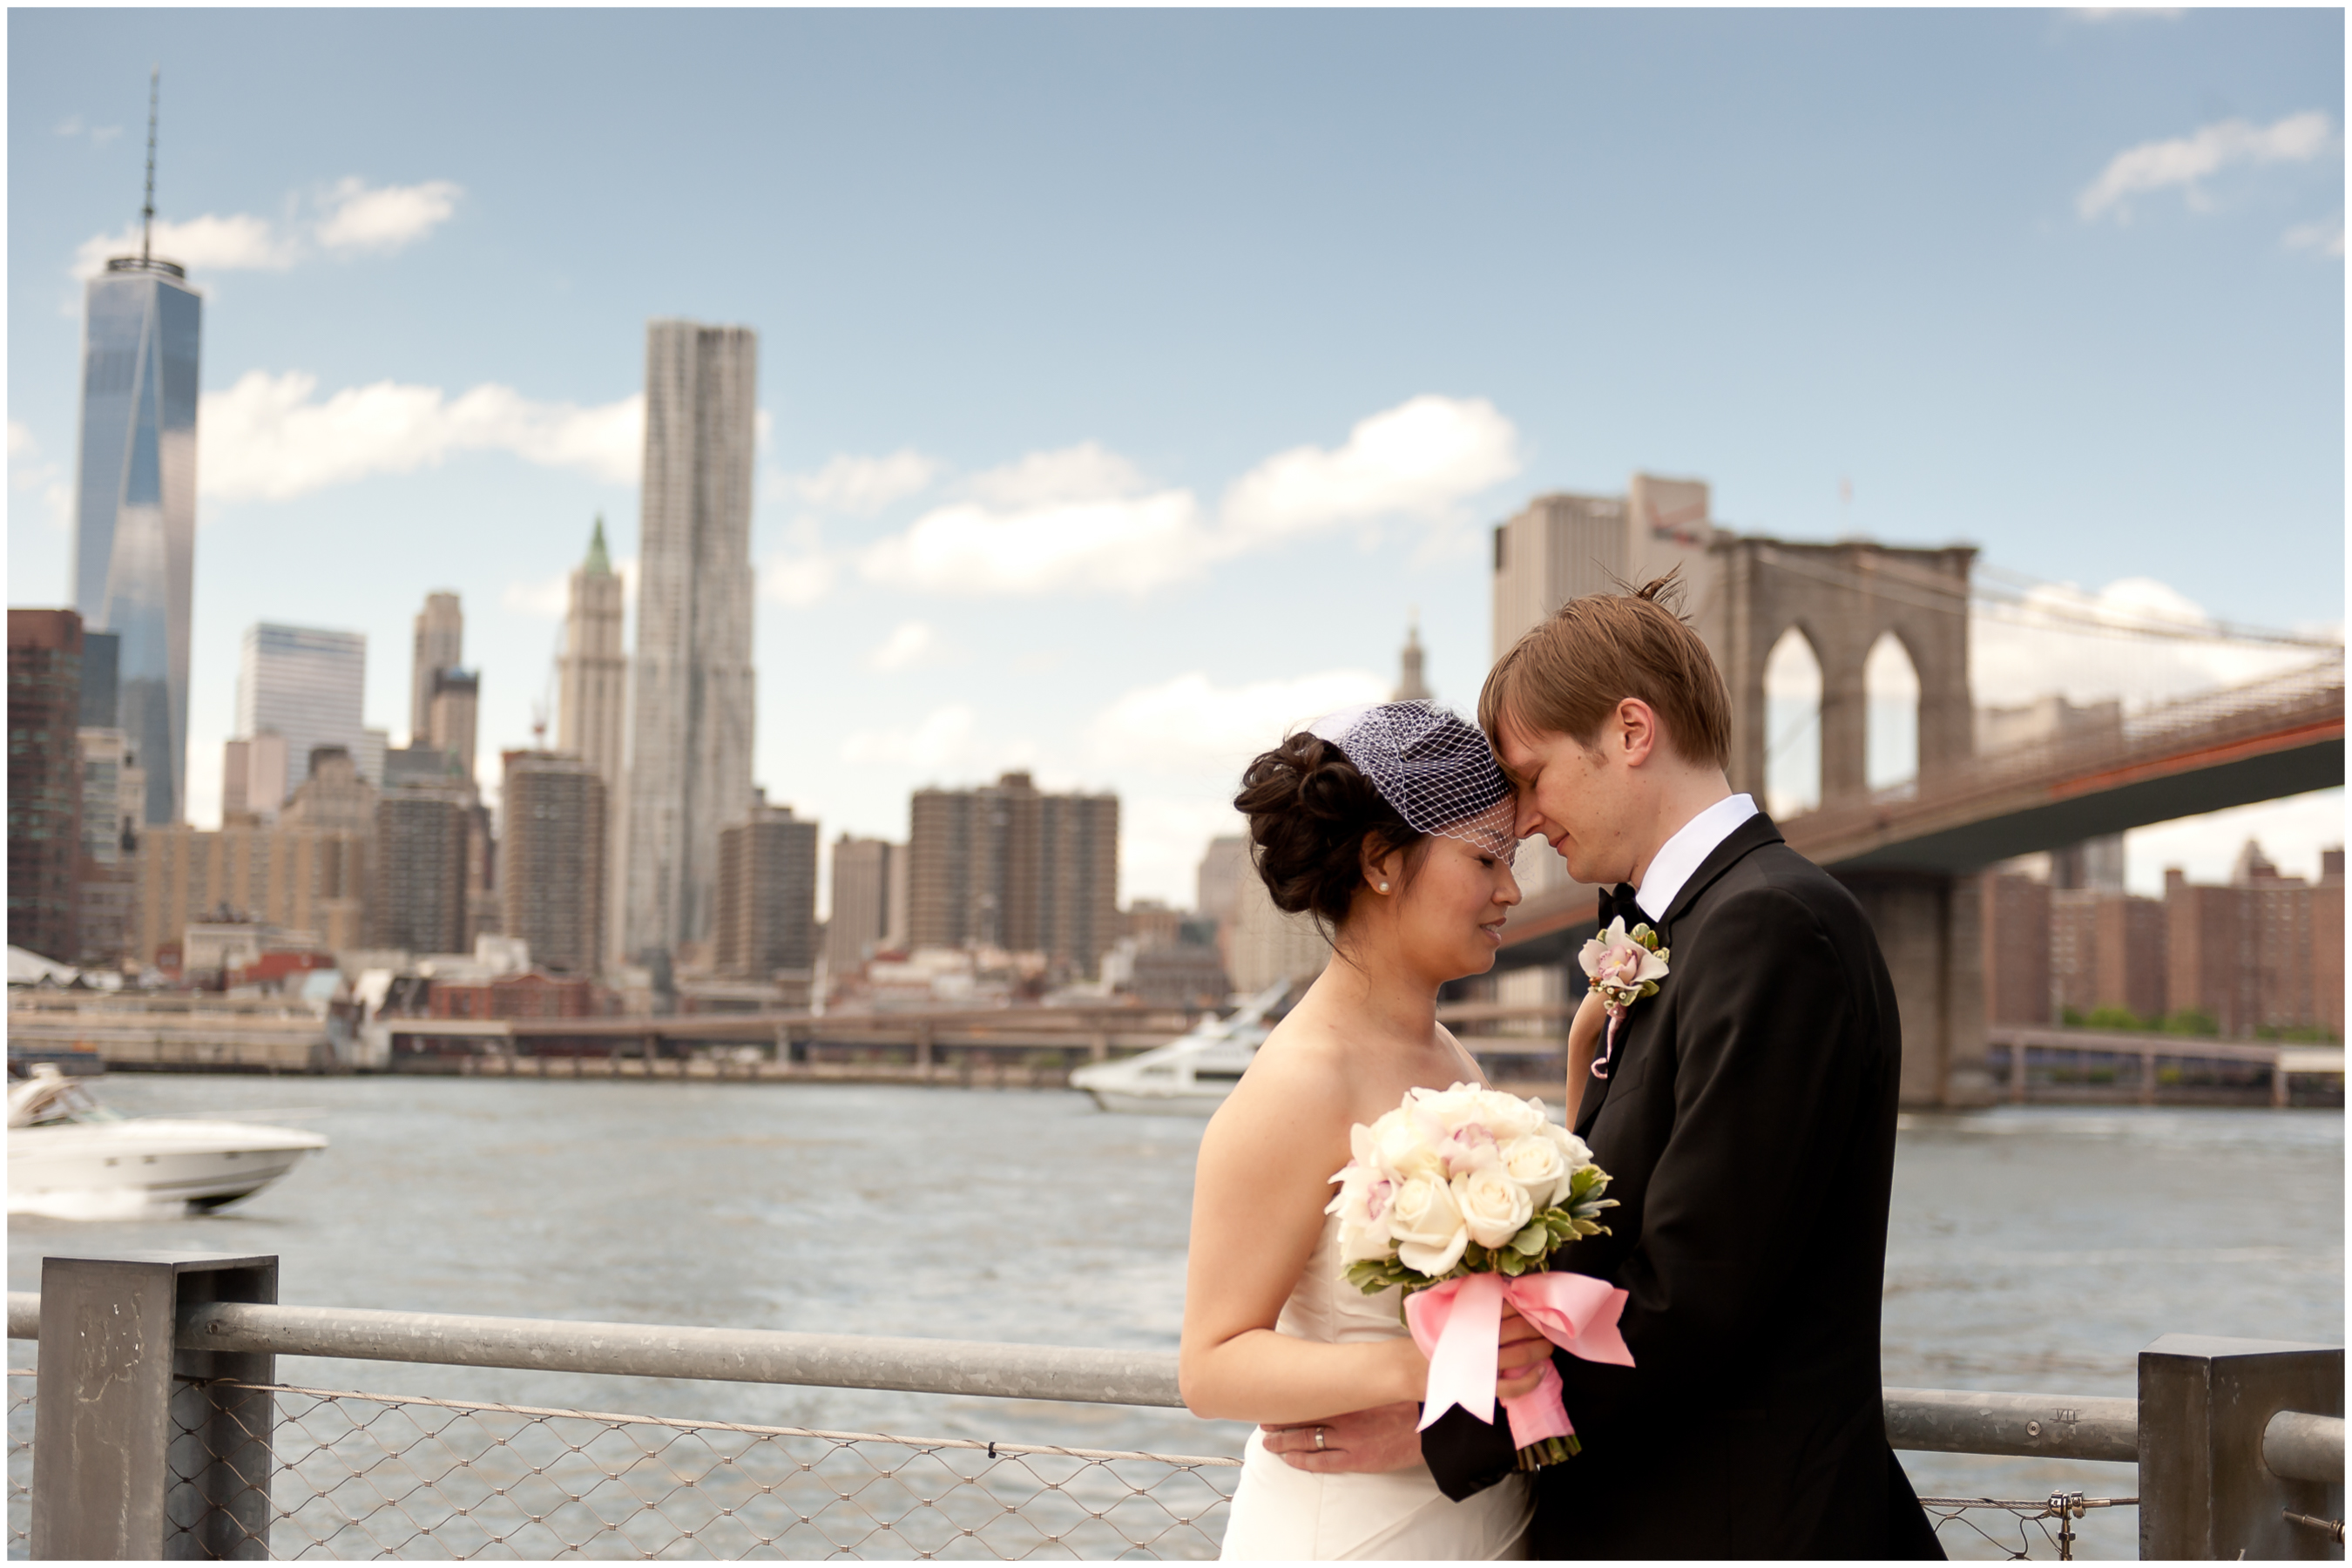 Wedding Photography At Brooklyn Bridge Park New York City Taken By Benson Lau 15